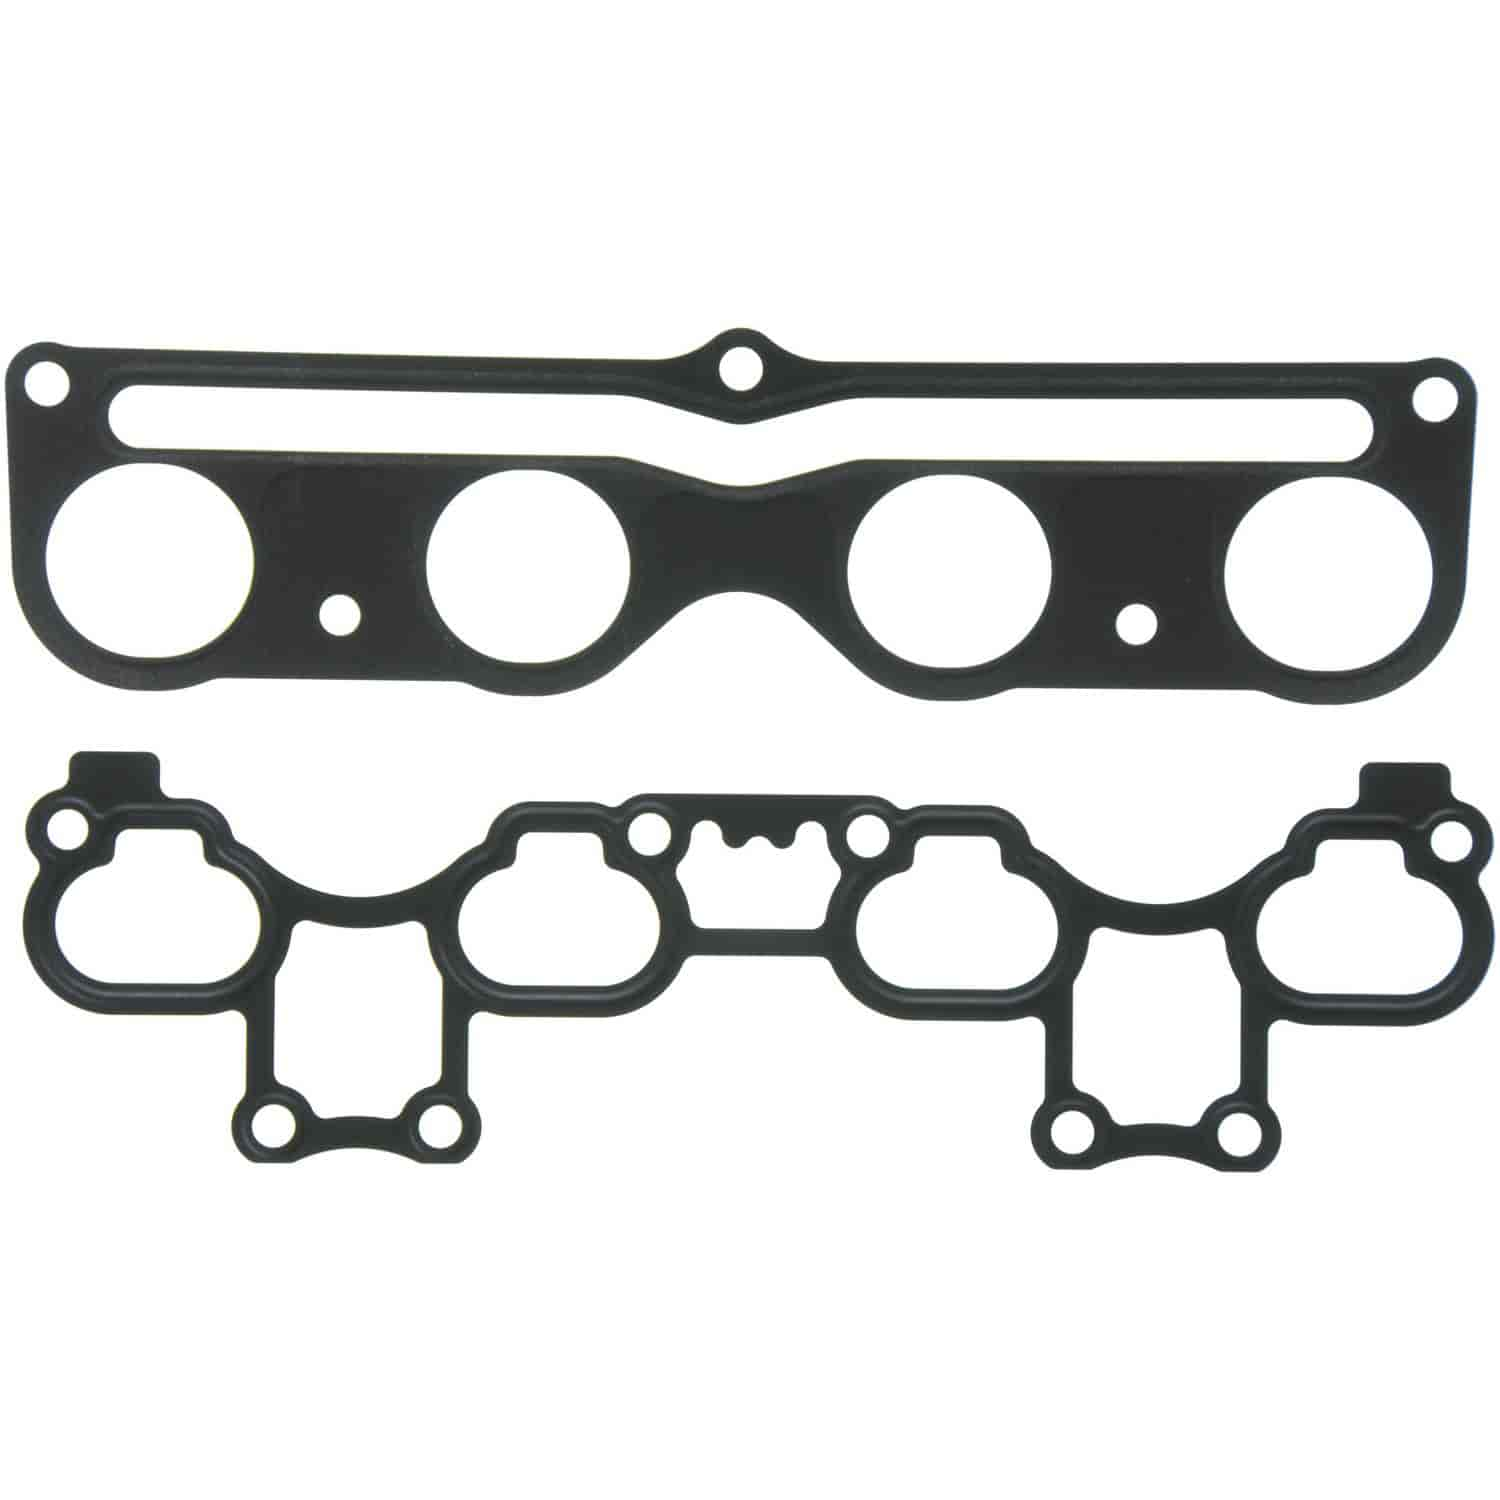 Clevite Mahle Ms Intake Manifold Set For Nissan Pass